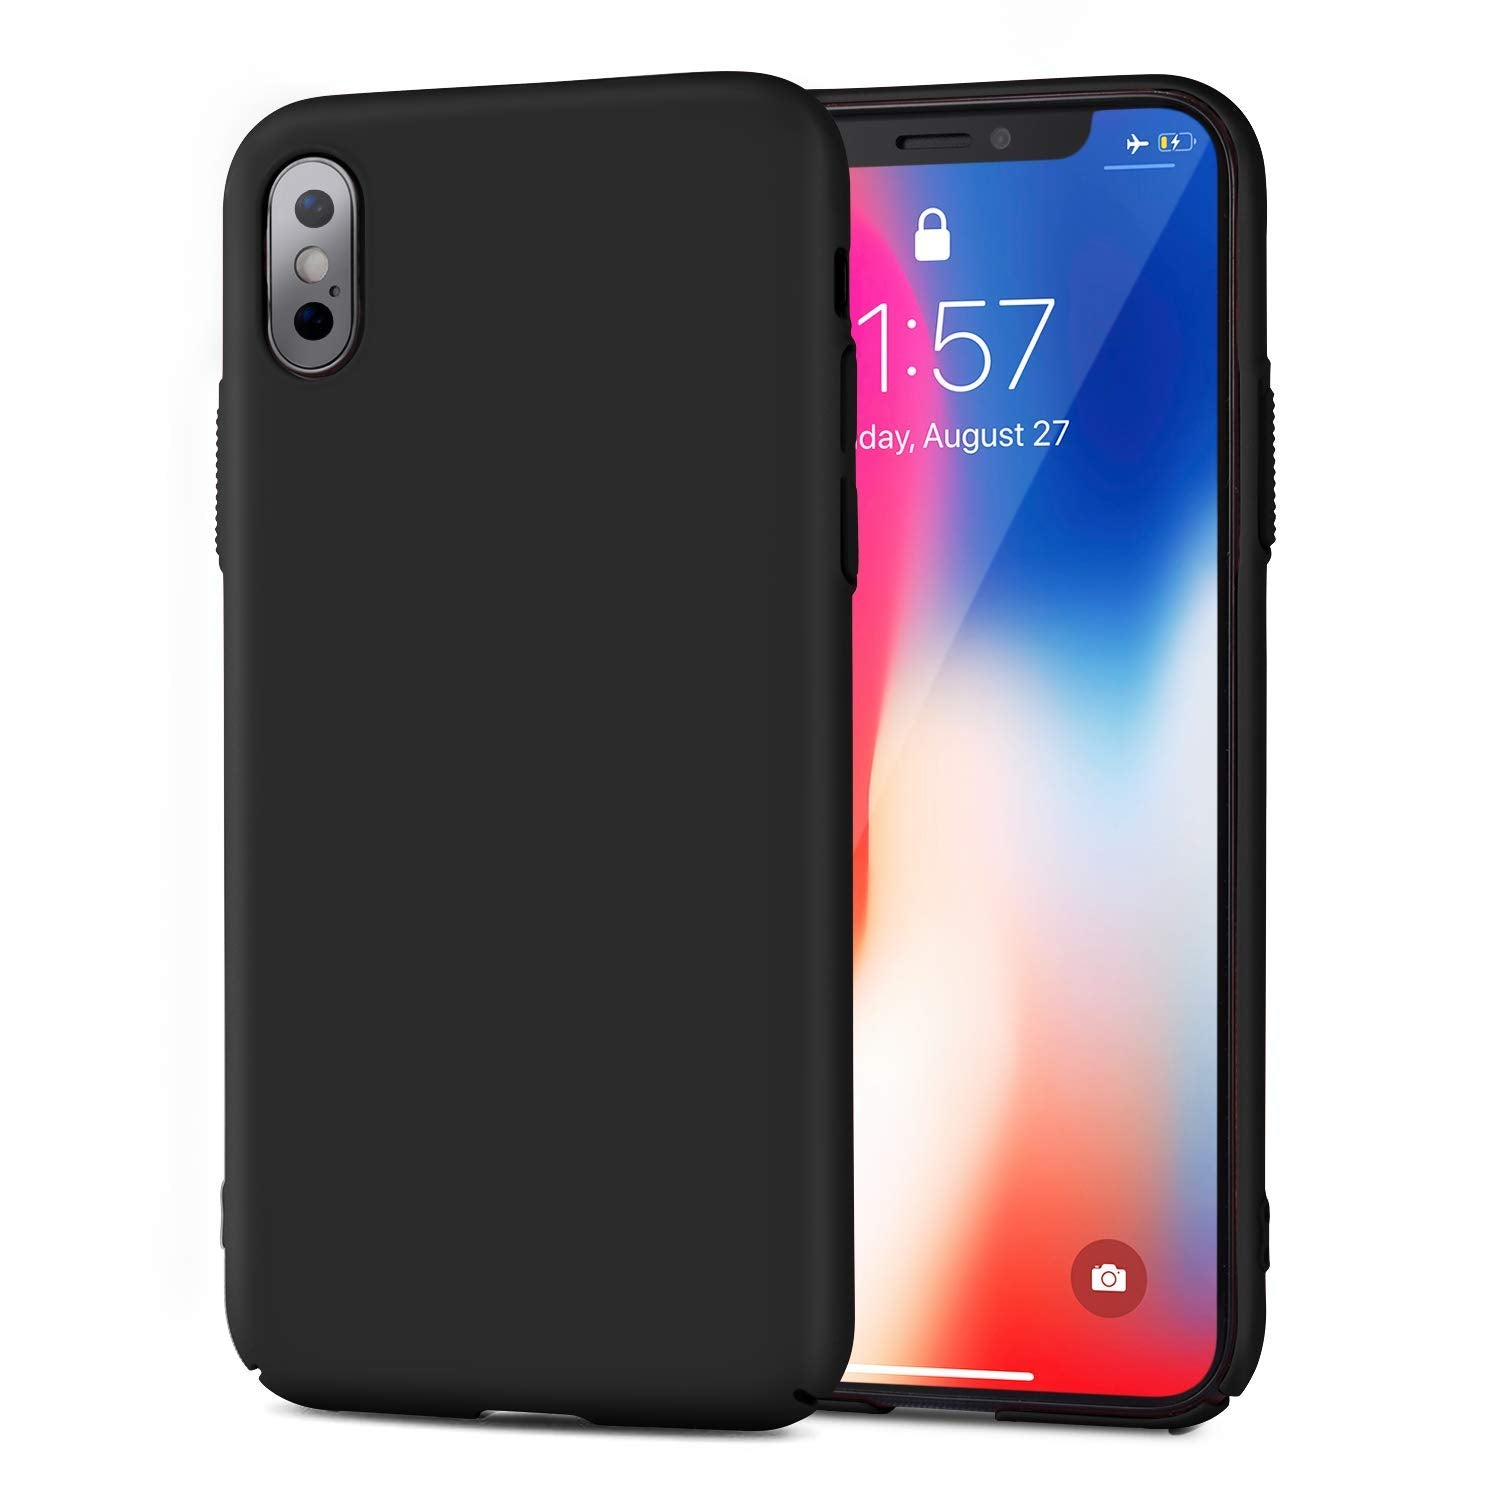 Roopose Phone Case Slim Fit Matte Finish Coating Grip Case Ultra Thin Full Protection Hard PC Anti-Scratch Resistant Phone Cover Shell Compatible with iPhone X